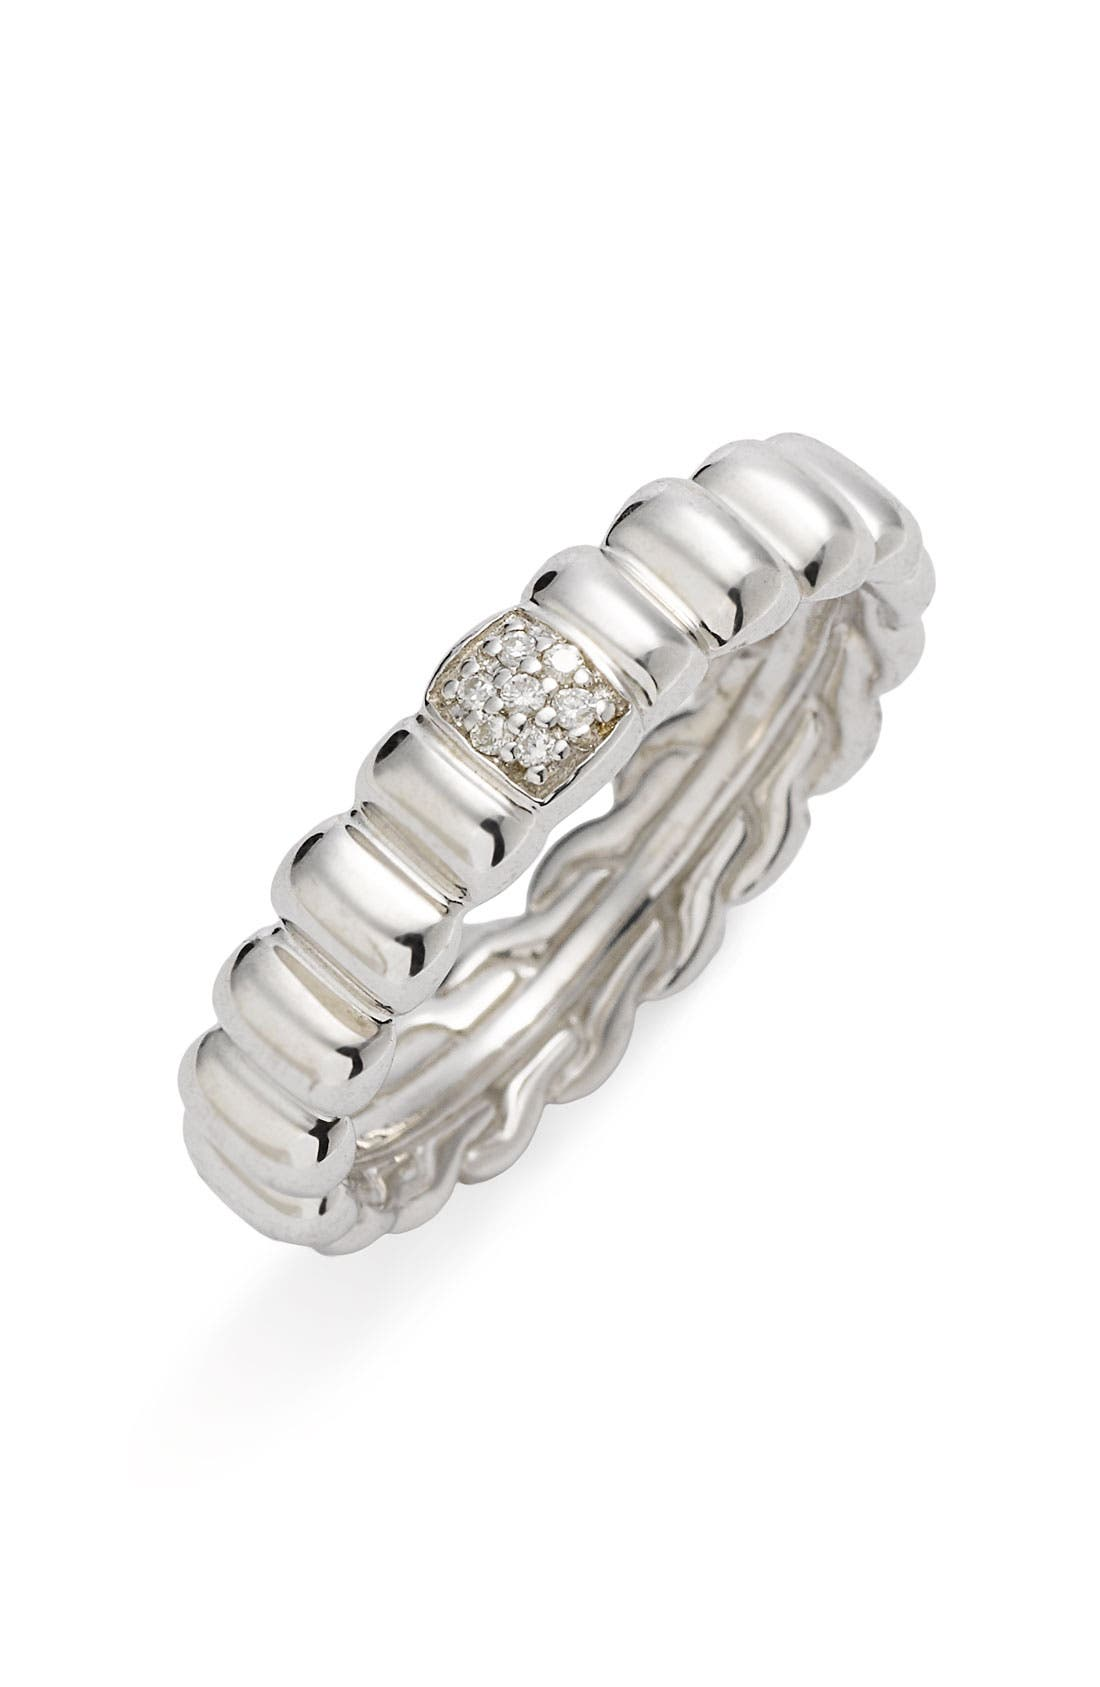 Main Image - John Hardy 'Bedeg' Slim Diamond Pavé Ring